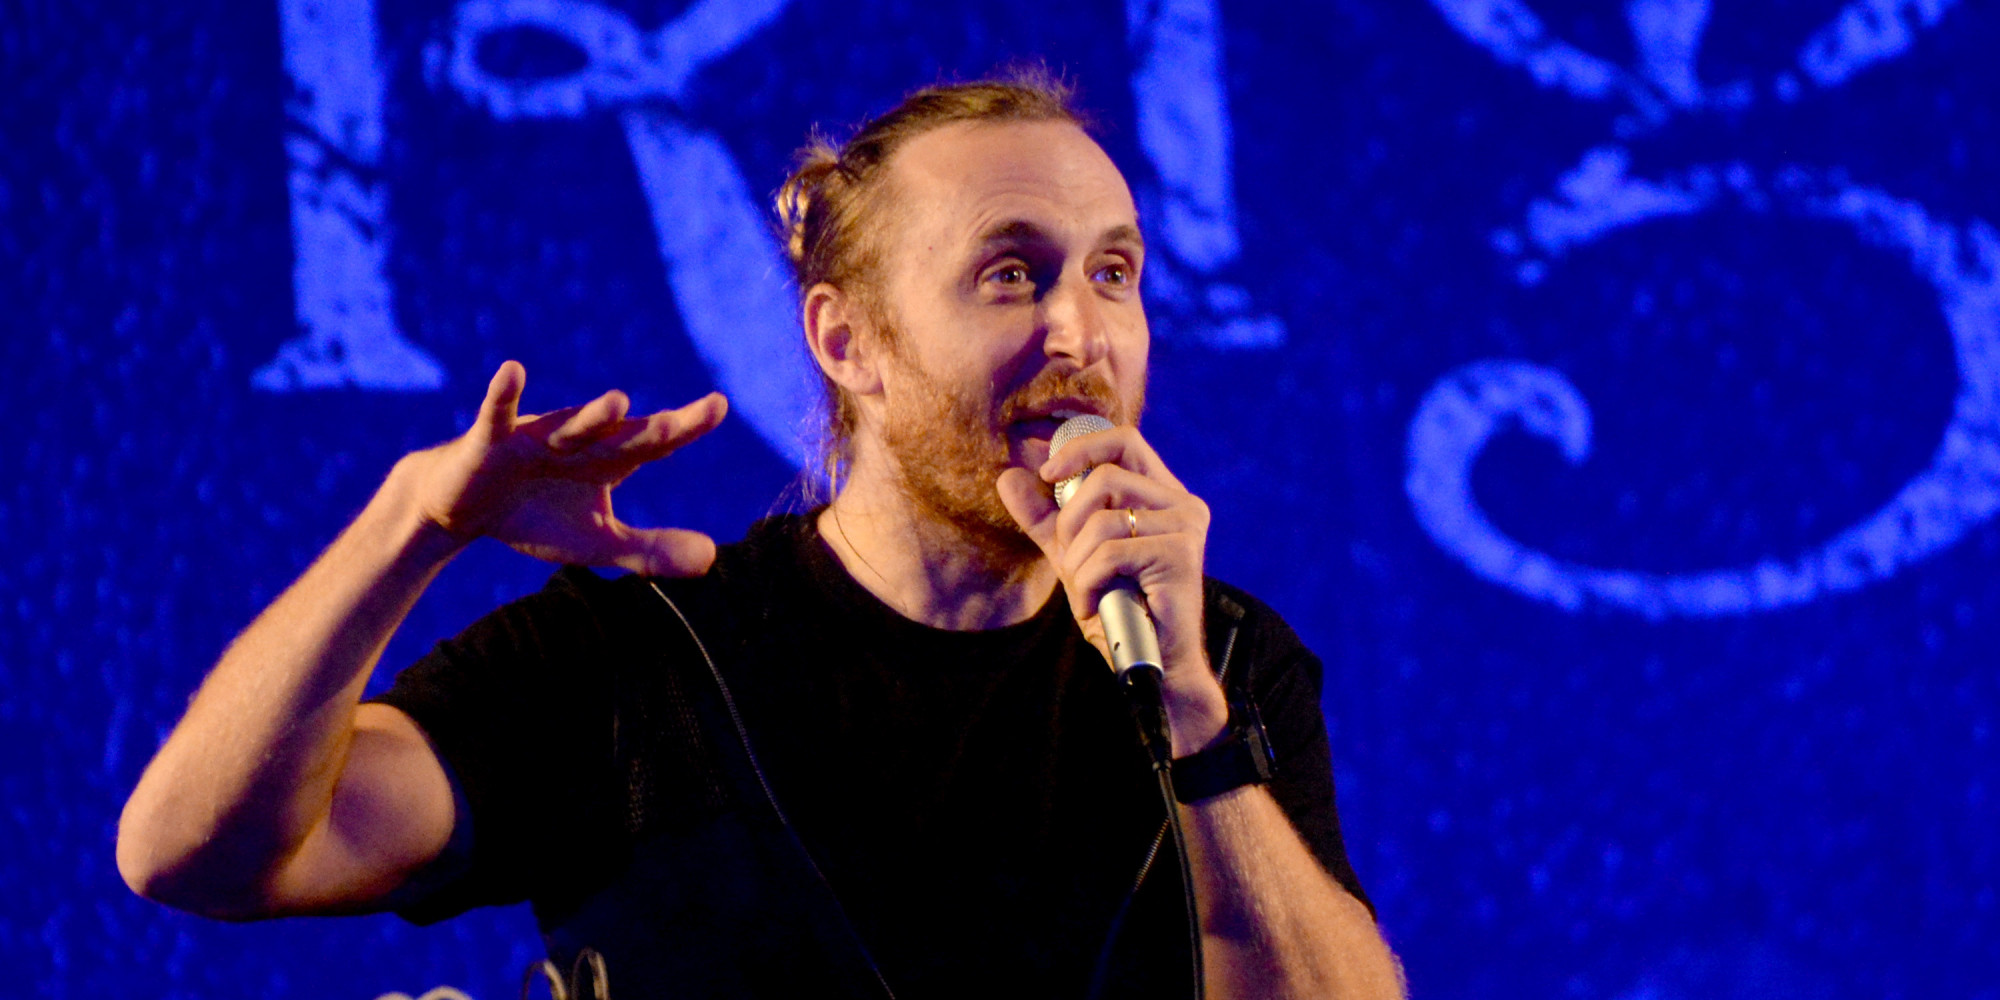 David guetta reacts to lorde s diss i didn t ask her the